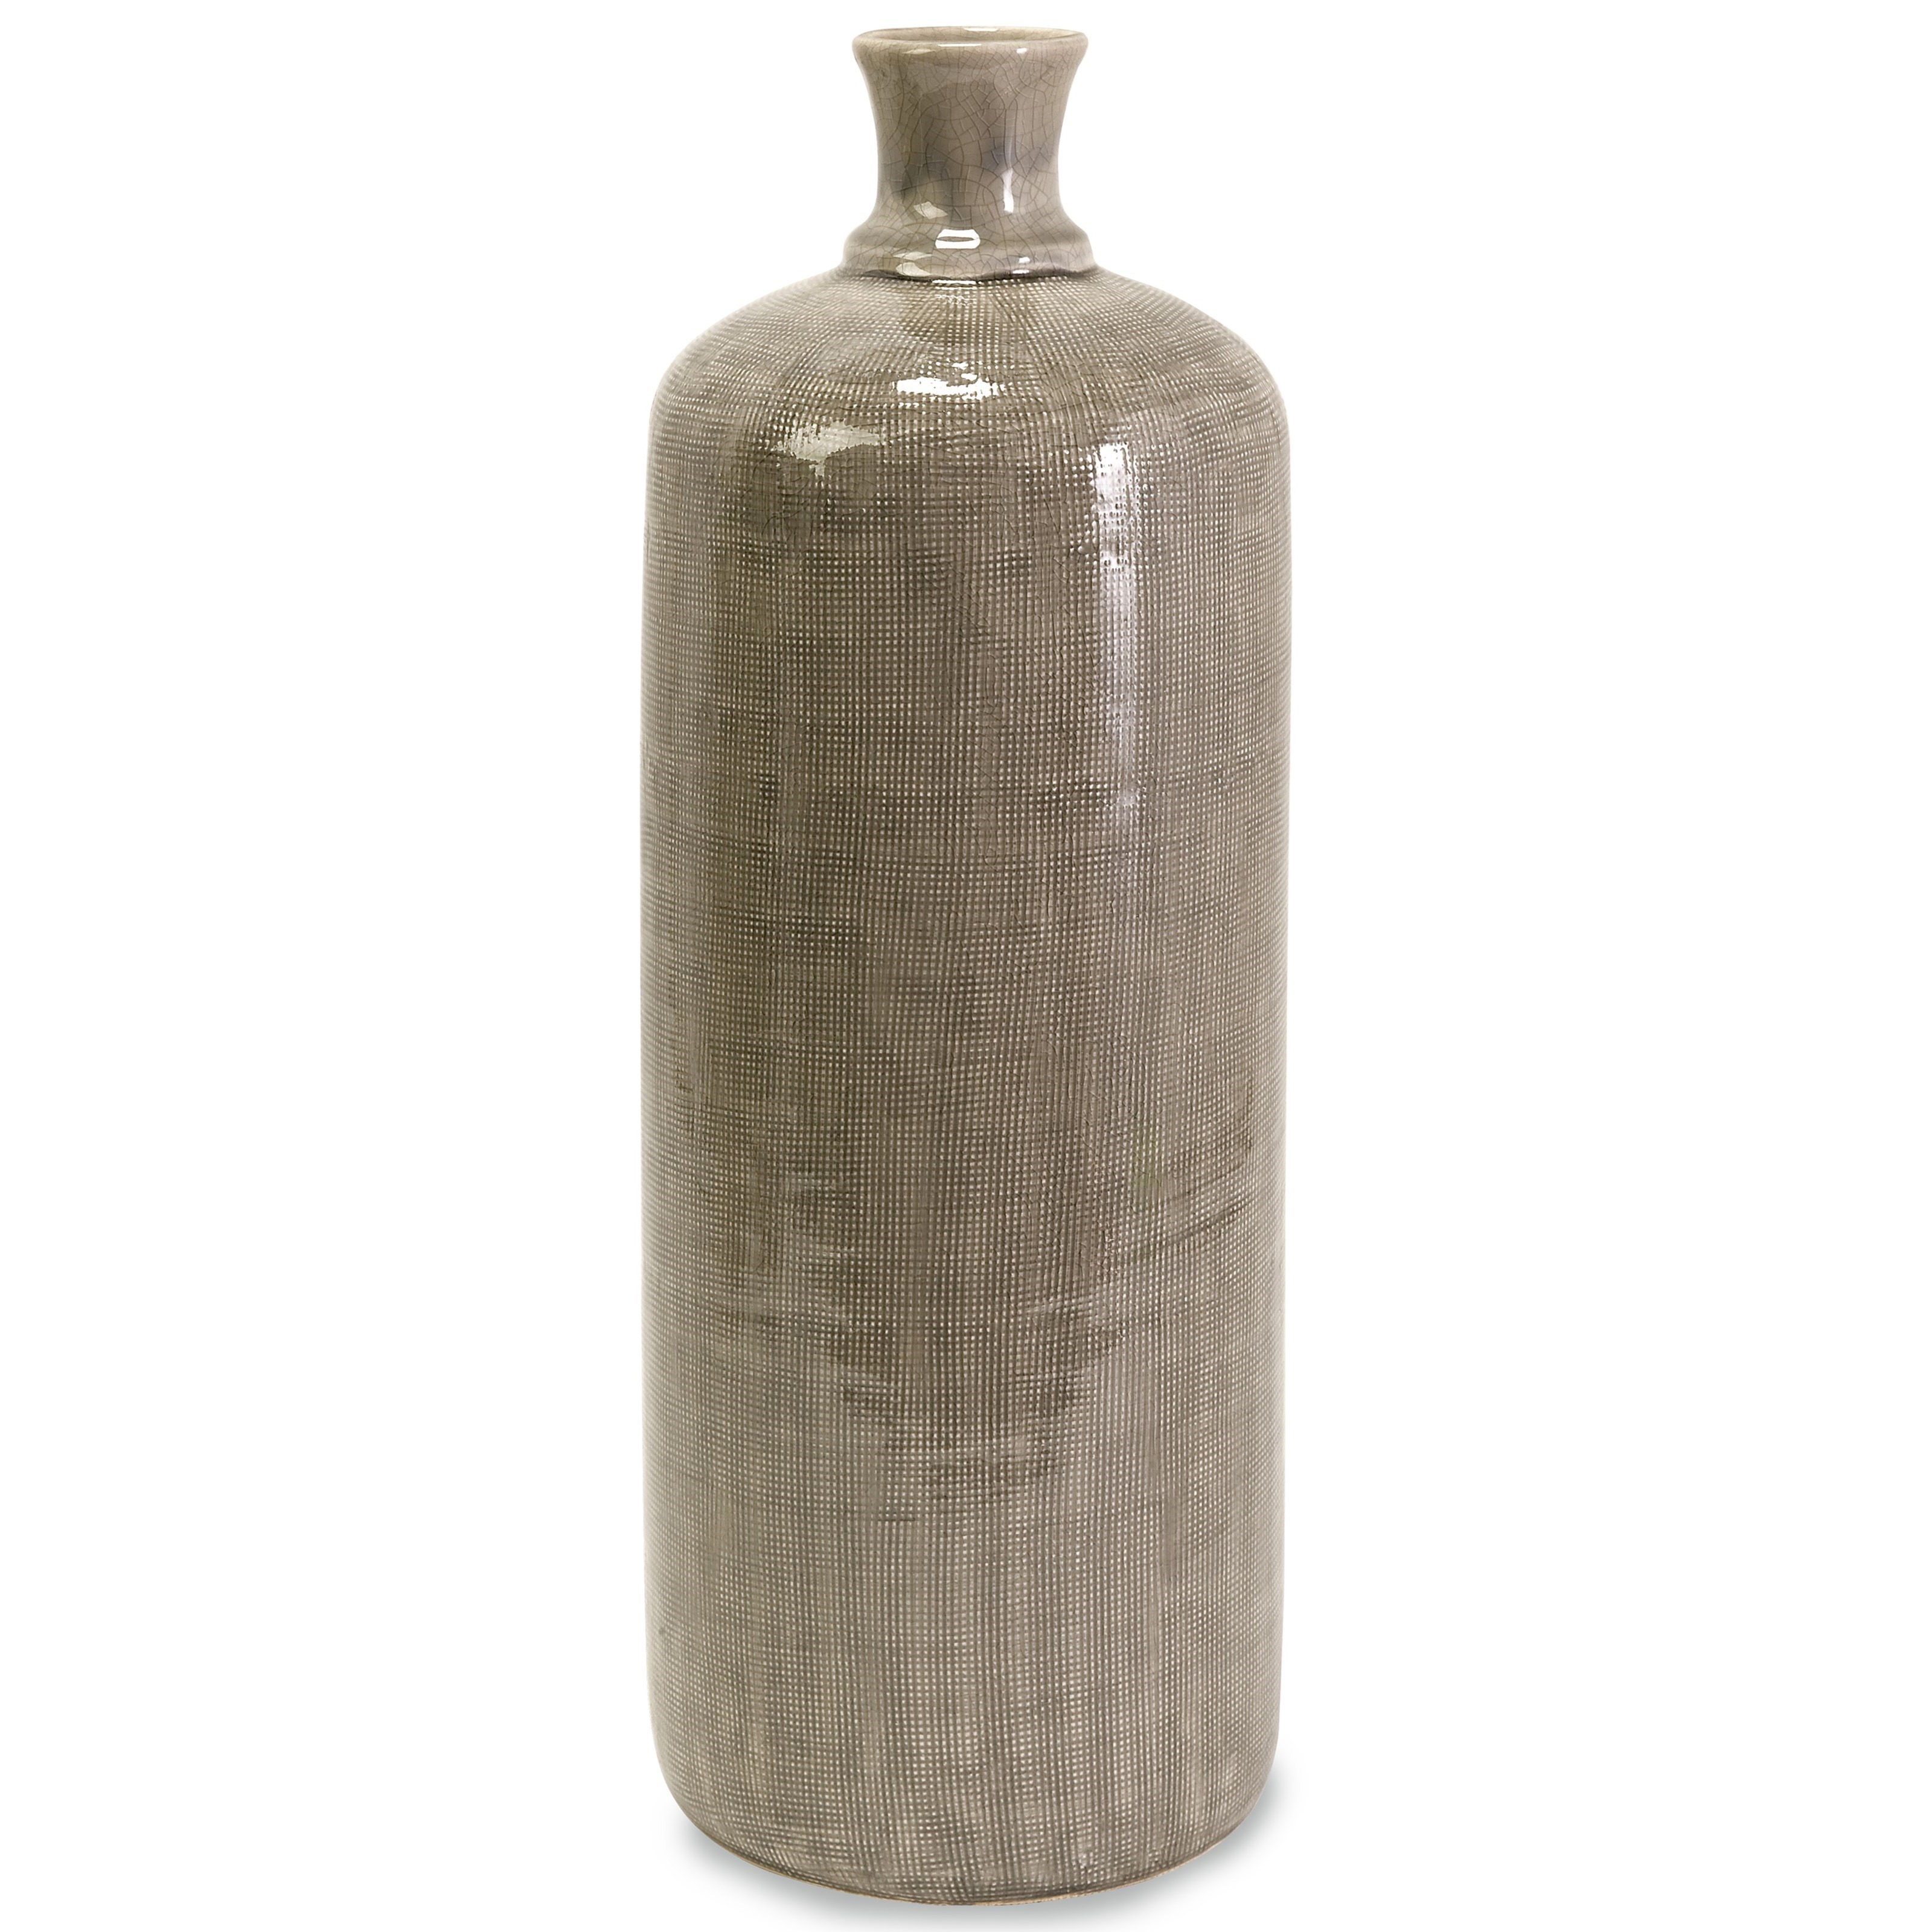 Bottles, Jars, and Canisters Kempton Large Grey Jar by IMAX Worldwide Home at Miller Waldrop Furniture and Decor